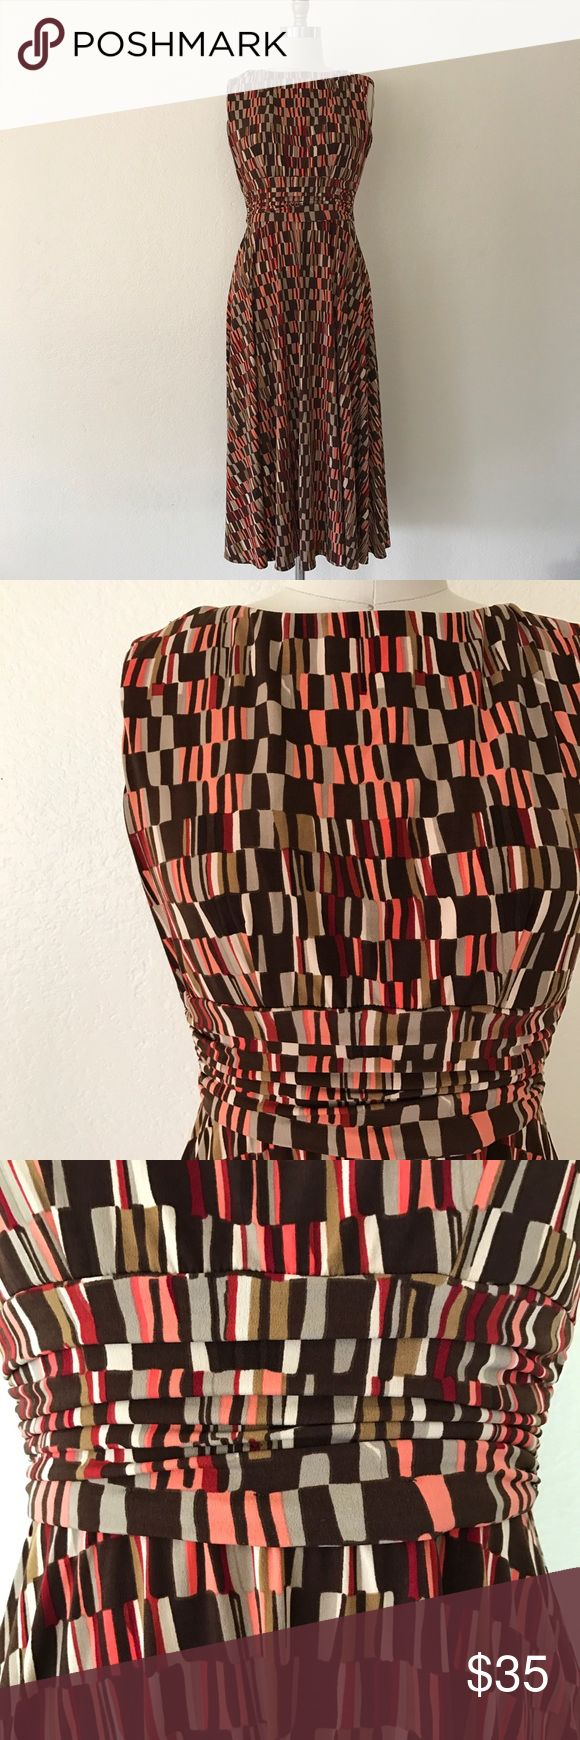 """Vintage 90s Pink & Brown Tea Dress Vintage 90s Jessica Howard Brown & Pink Sleeveless Tea Dress  Back zip, gathered waistband, below the knee, lined 96% Polyester, 4% Spandex 100% Polyester Lining  Size Petite 4  Approximate Flat Measurements Bust 17"""" Waist 13"""" Length 46"""" Vintage Dresses Midi"""